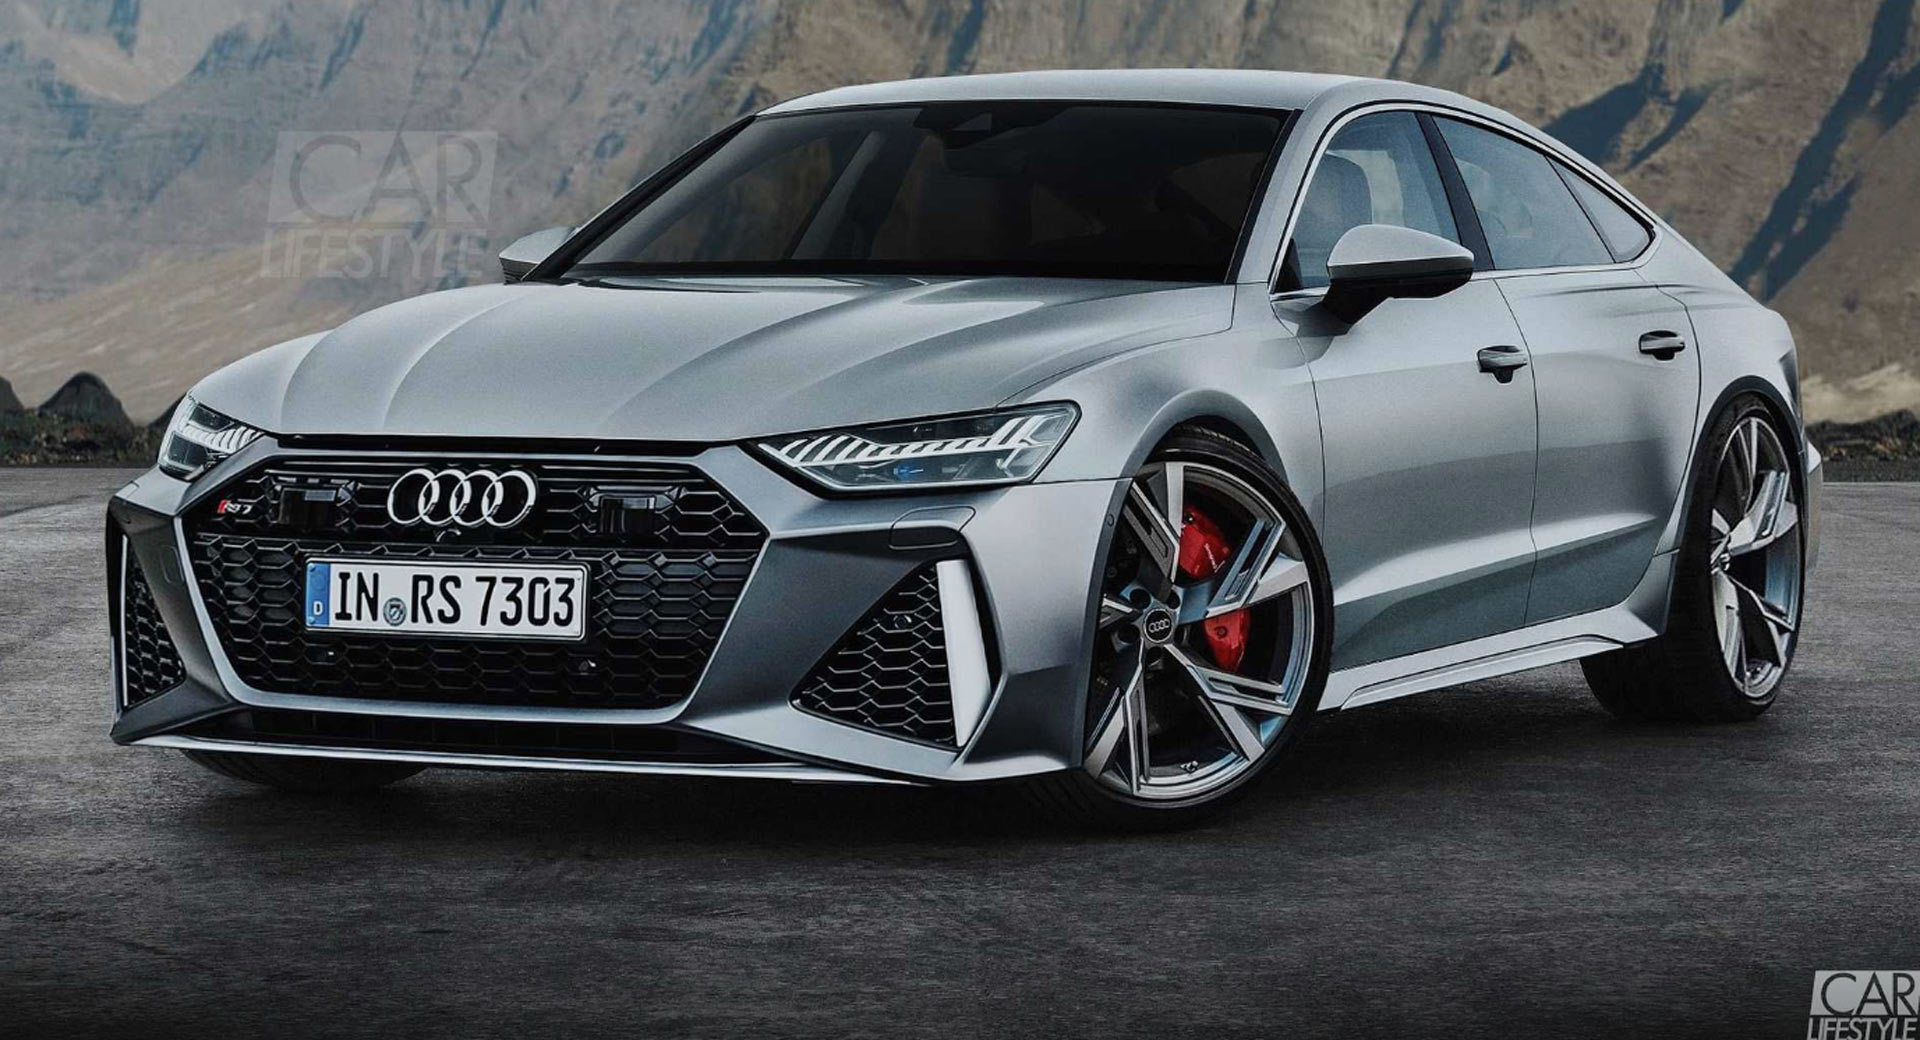 Audi Confirms New Rs7 Sportback For Frankfurt Motor Show Carscoops